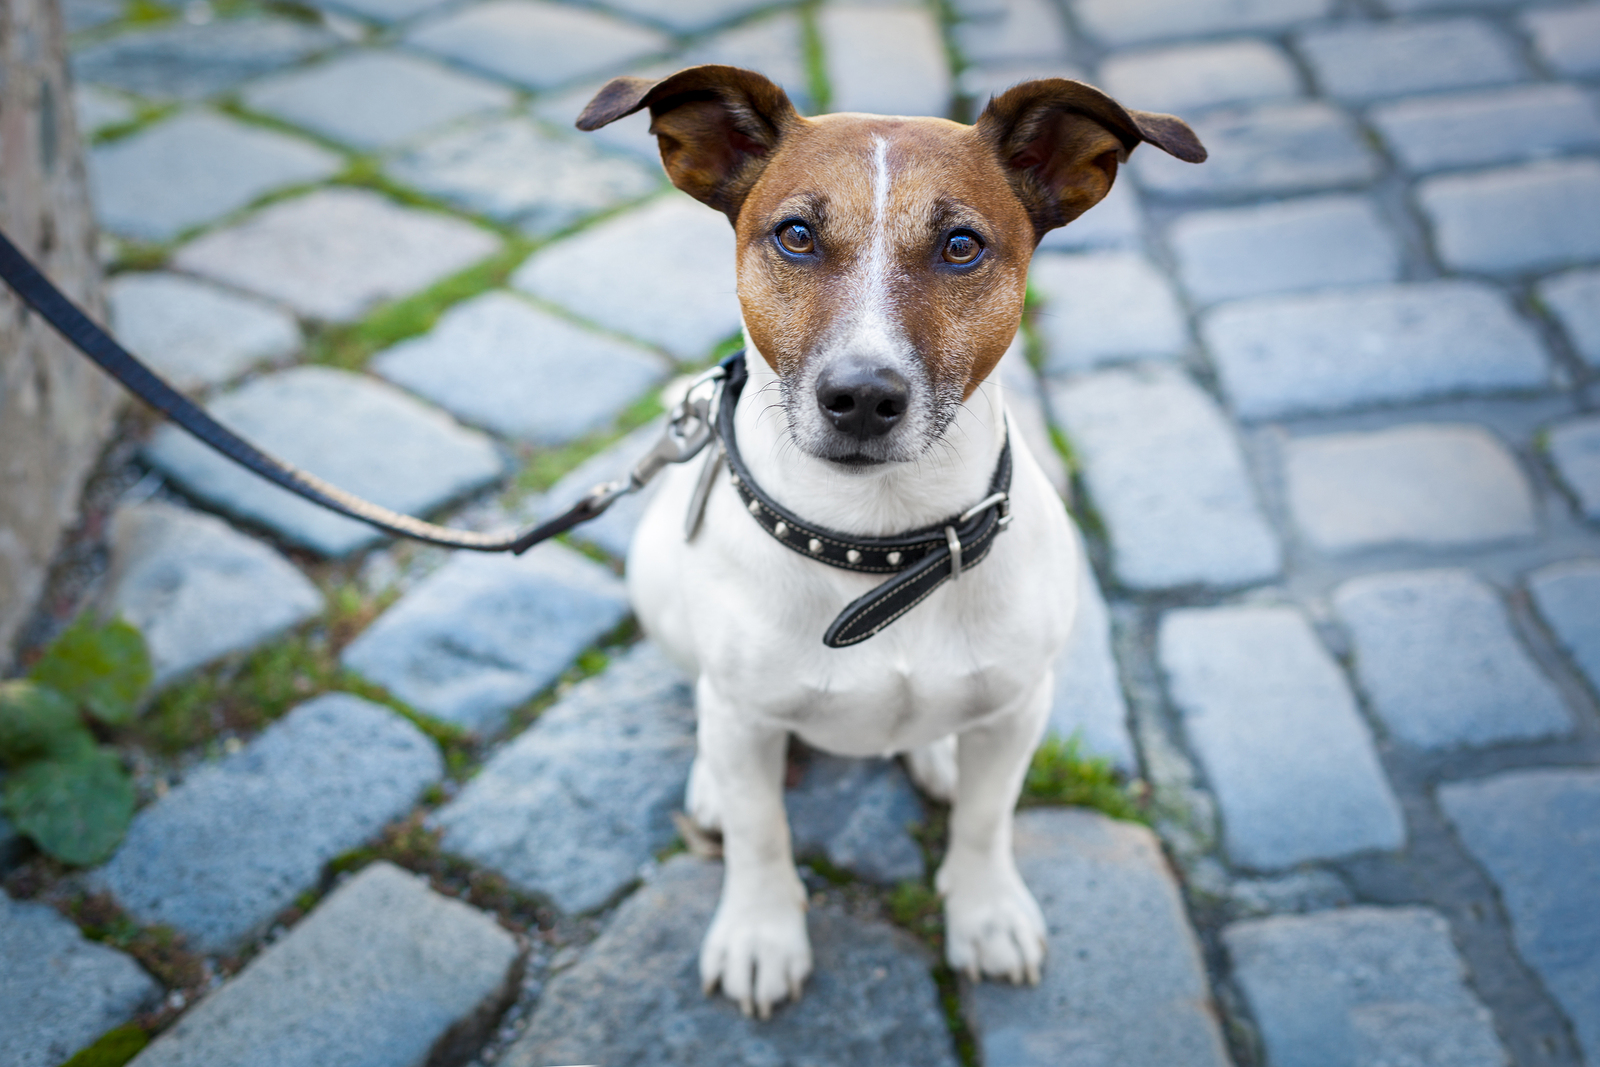 Leash training jack russell puppy